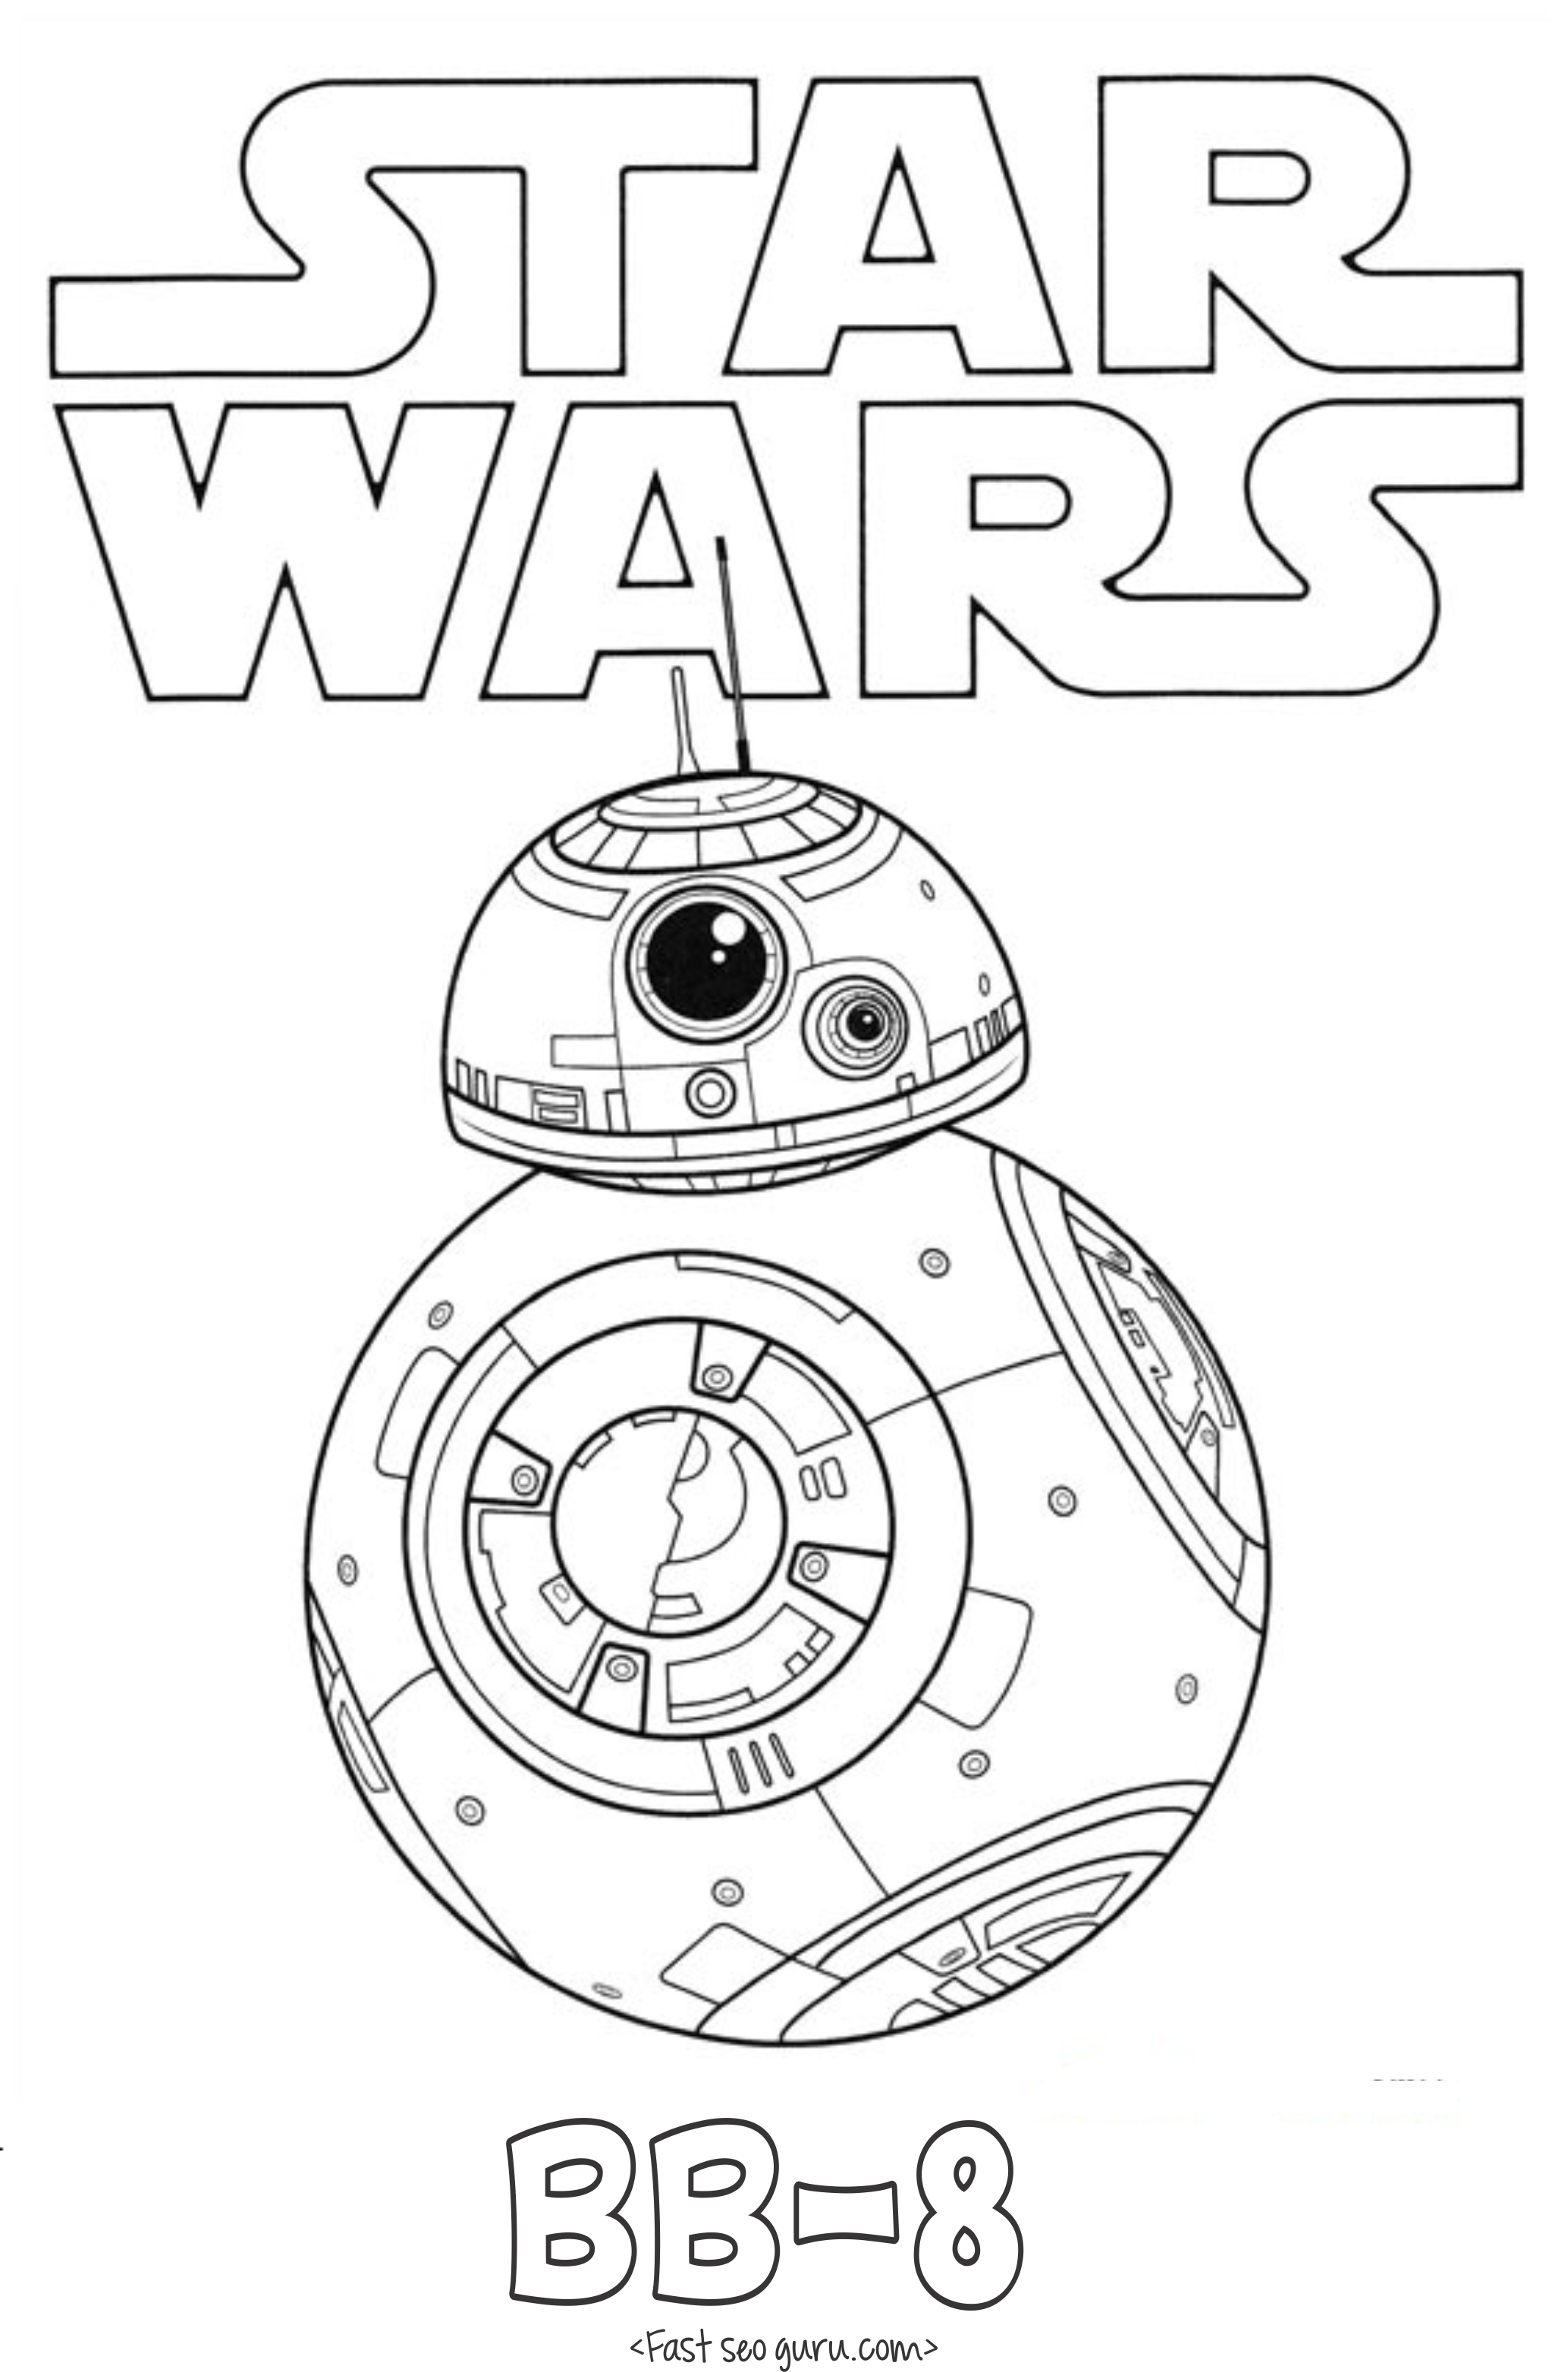 Kleurplaten Star Wars The Force Awakens.Star Wars The Force Awakens Bb 8 Coloring Pages